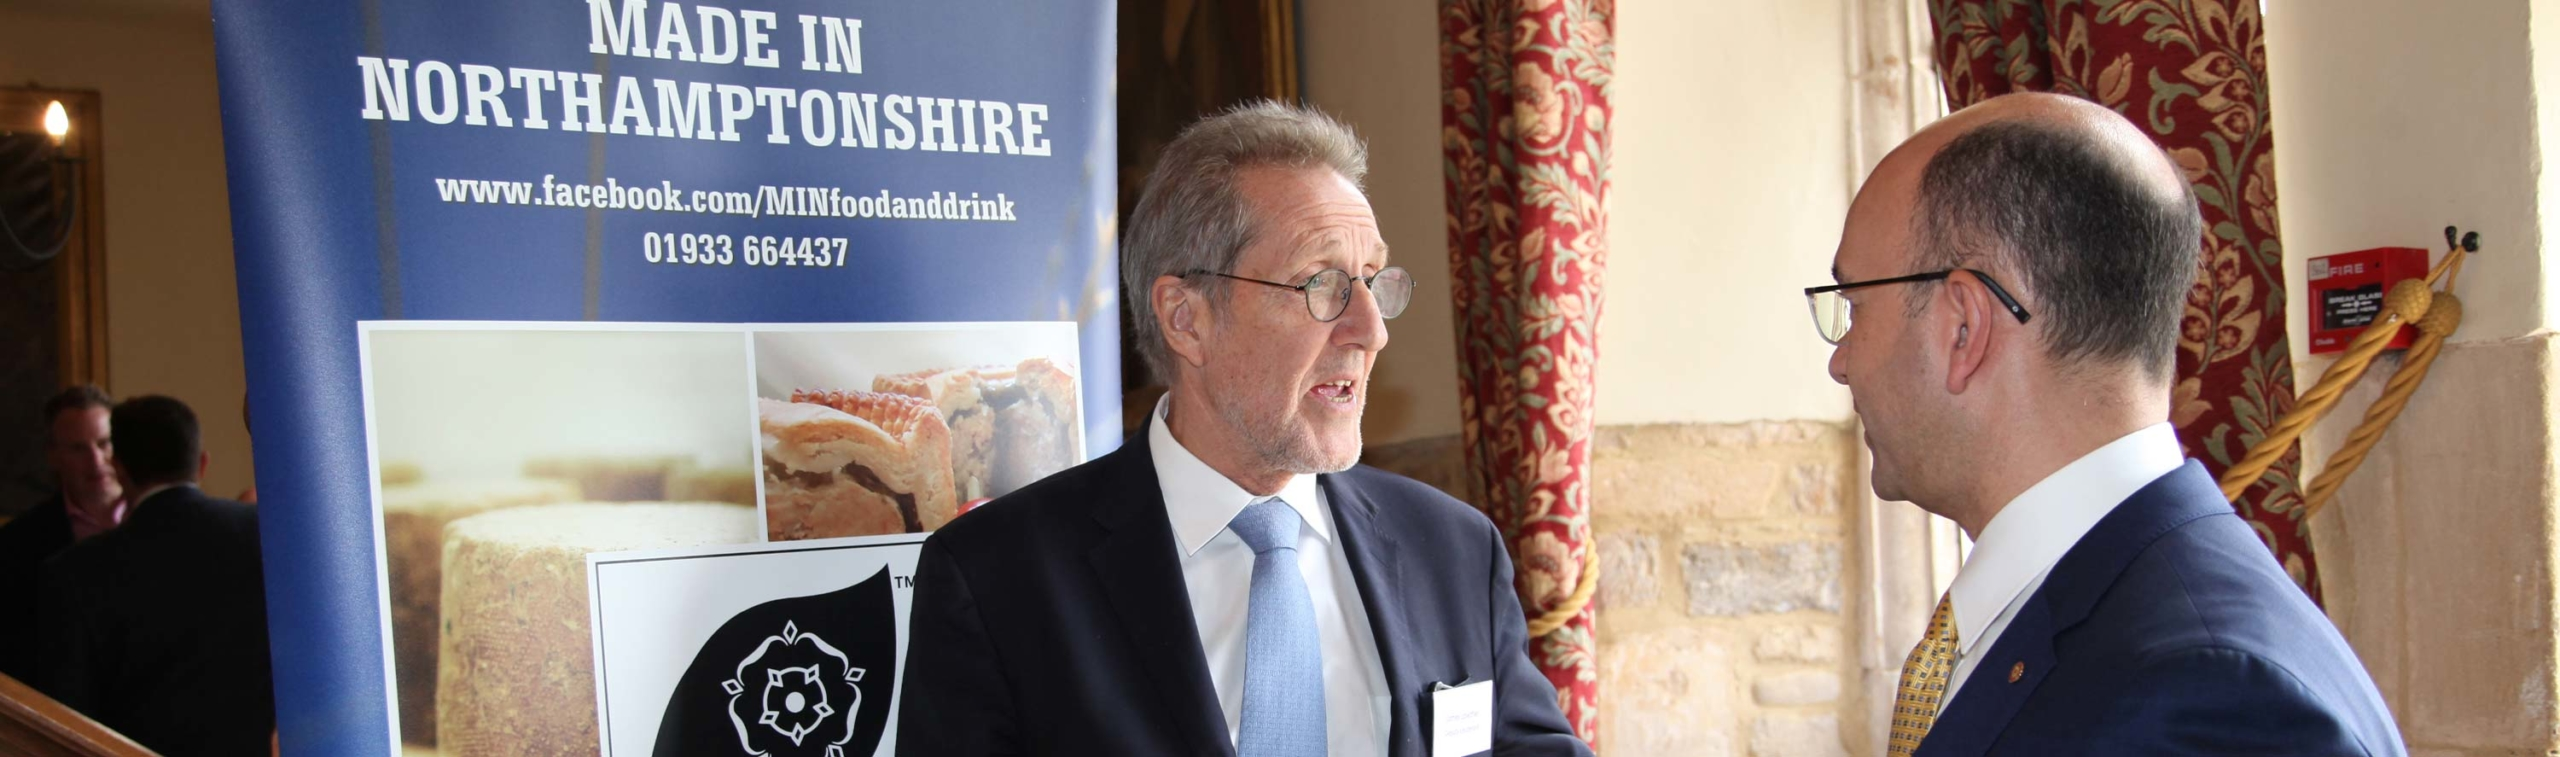 Made in Northamptonshire Event